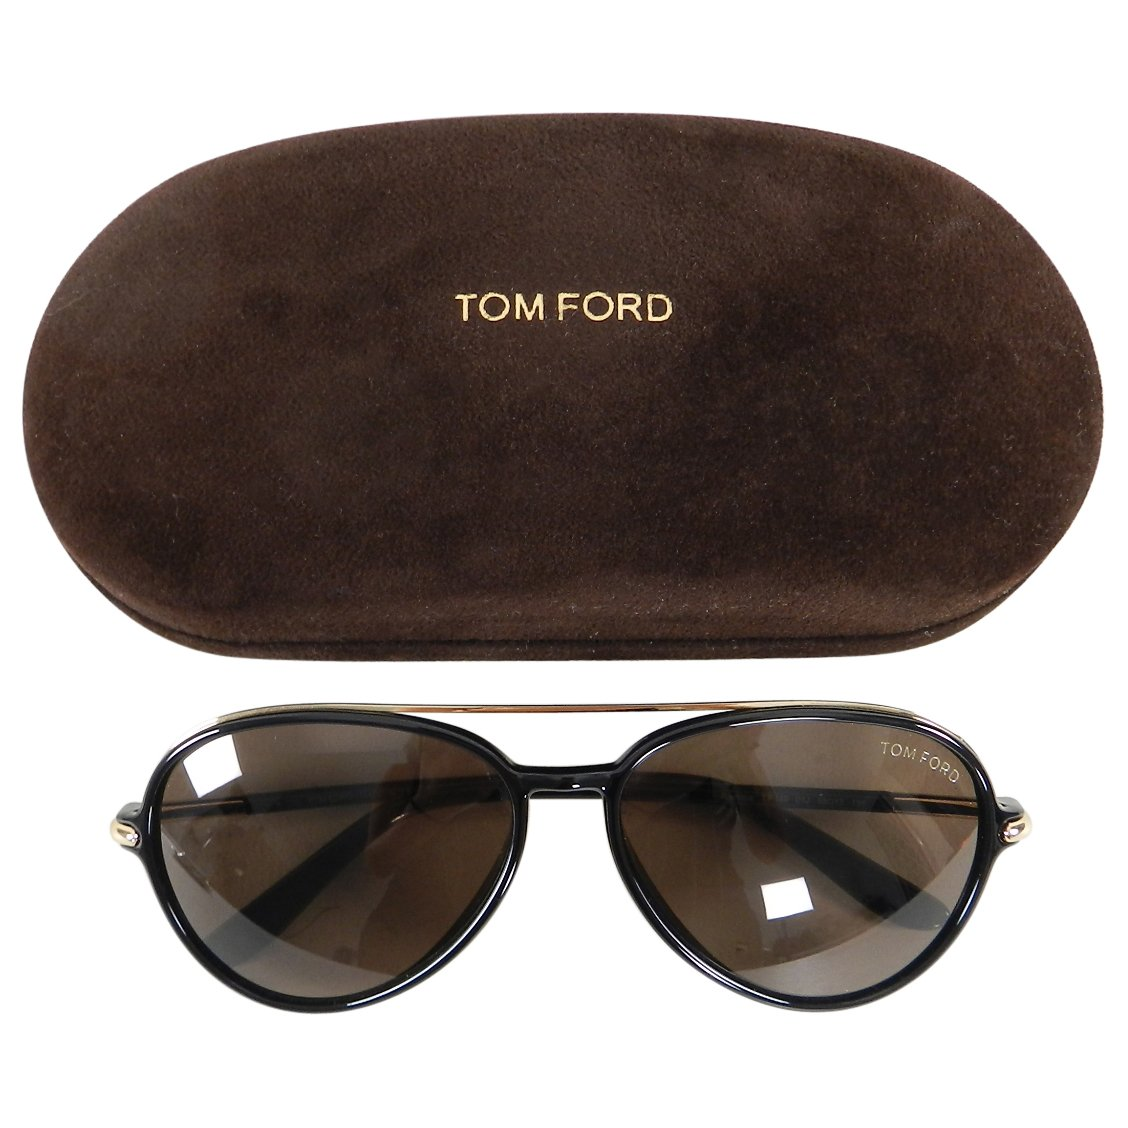 6182c111ea8 Details about Tom Ford RF149 Ramone Black Frame Aviator Sunglasses with Gold  Trim